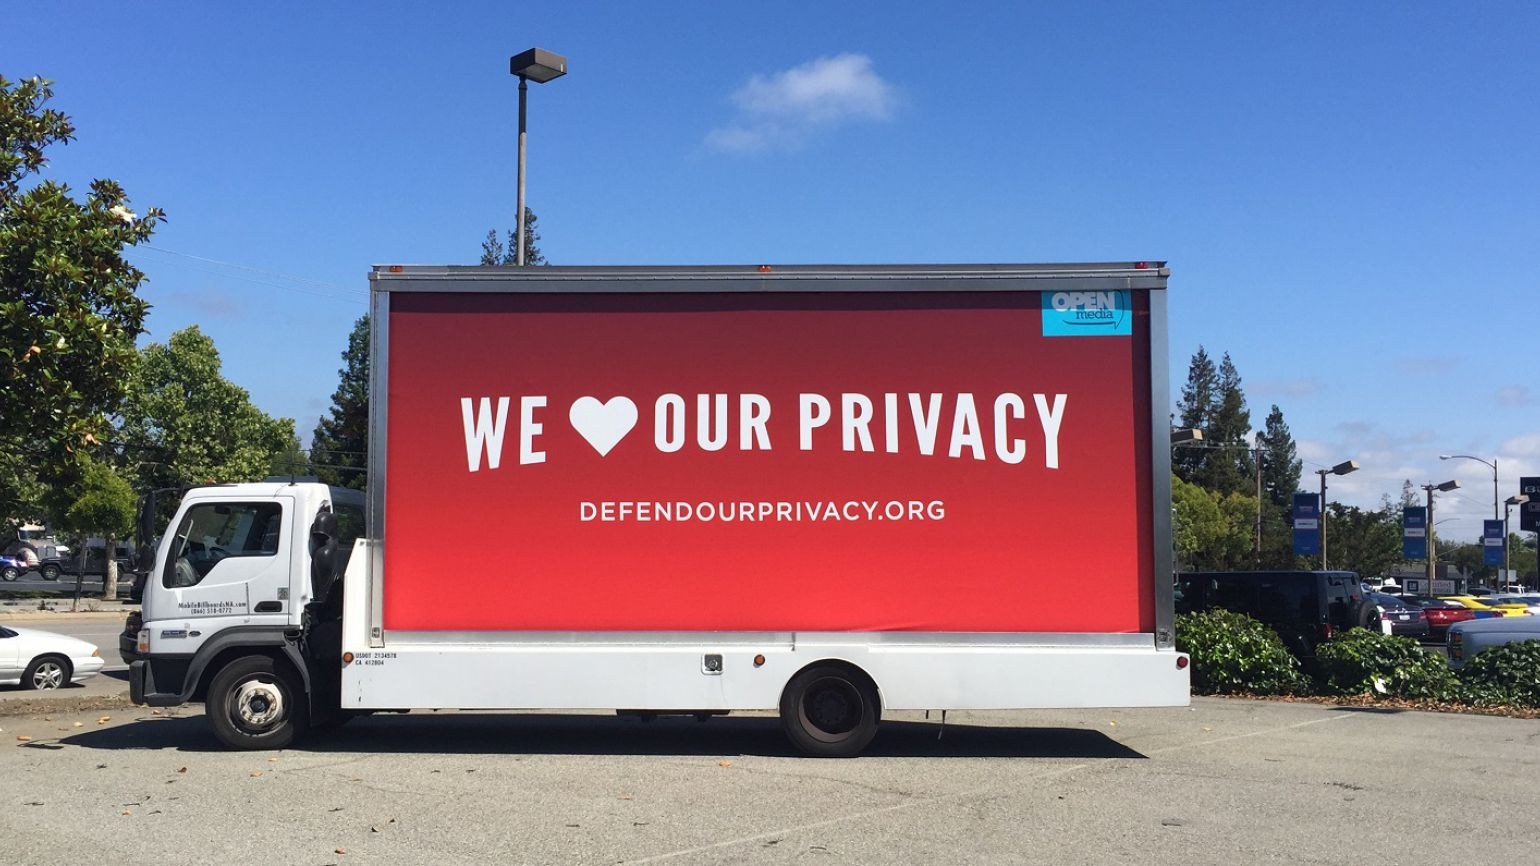 Our billboard in action